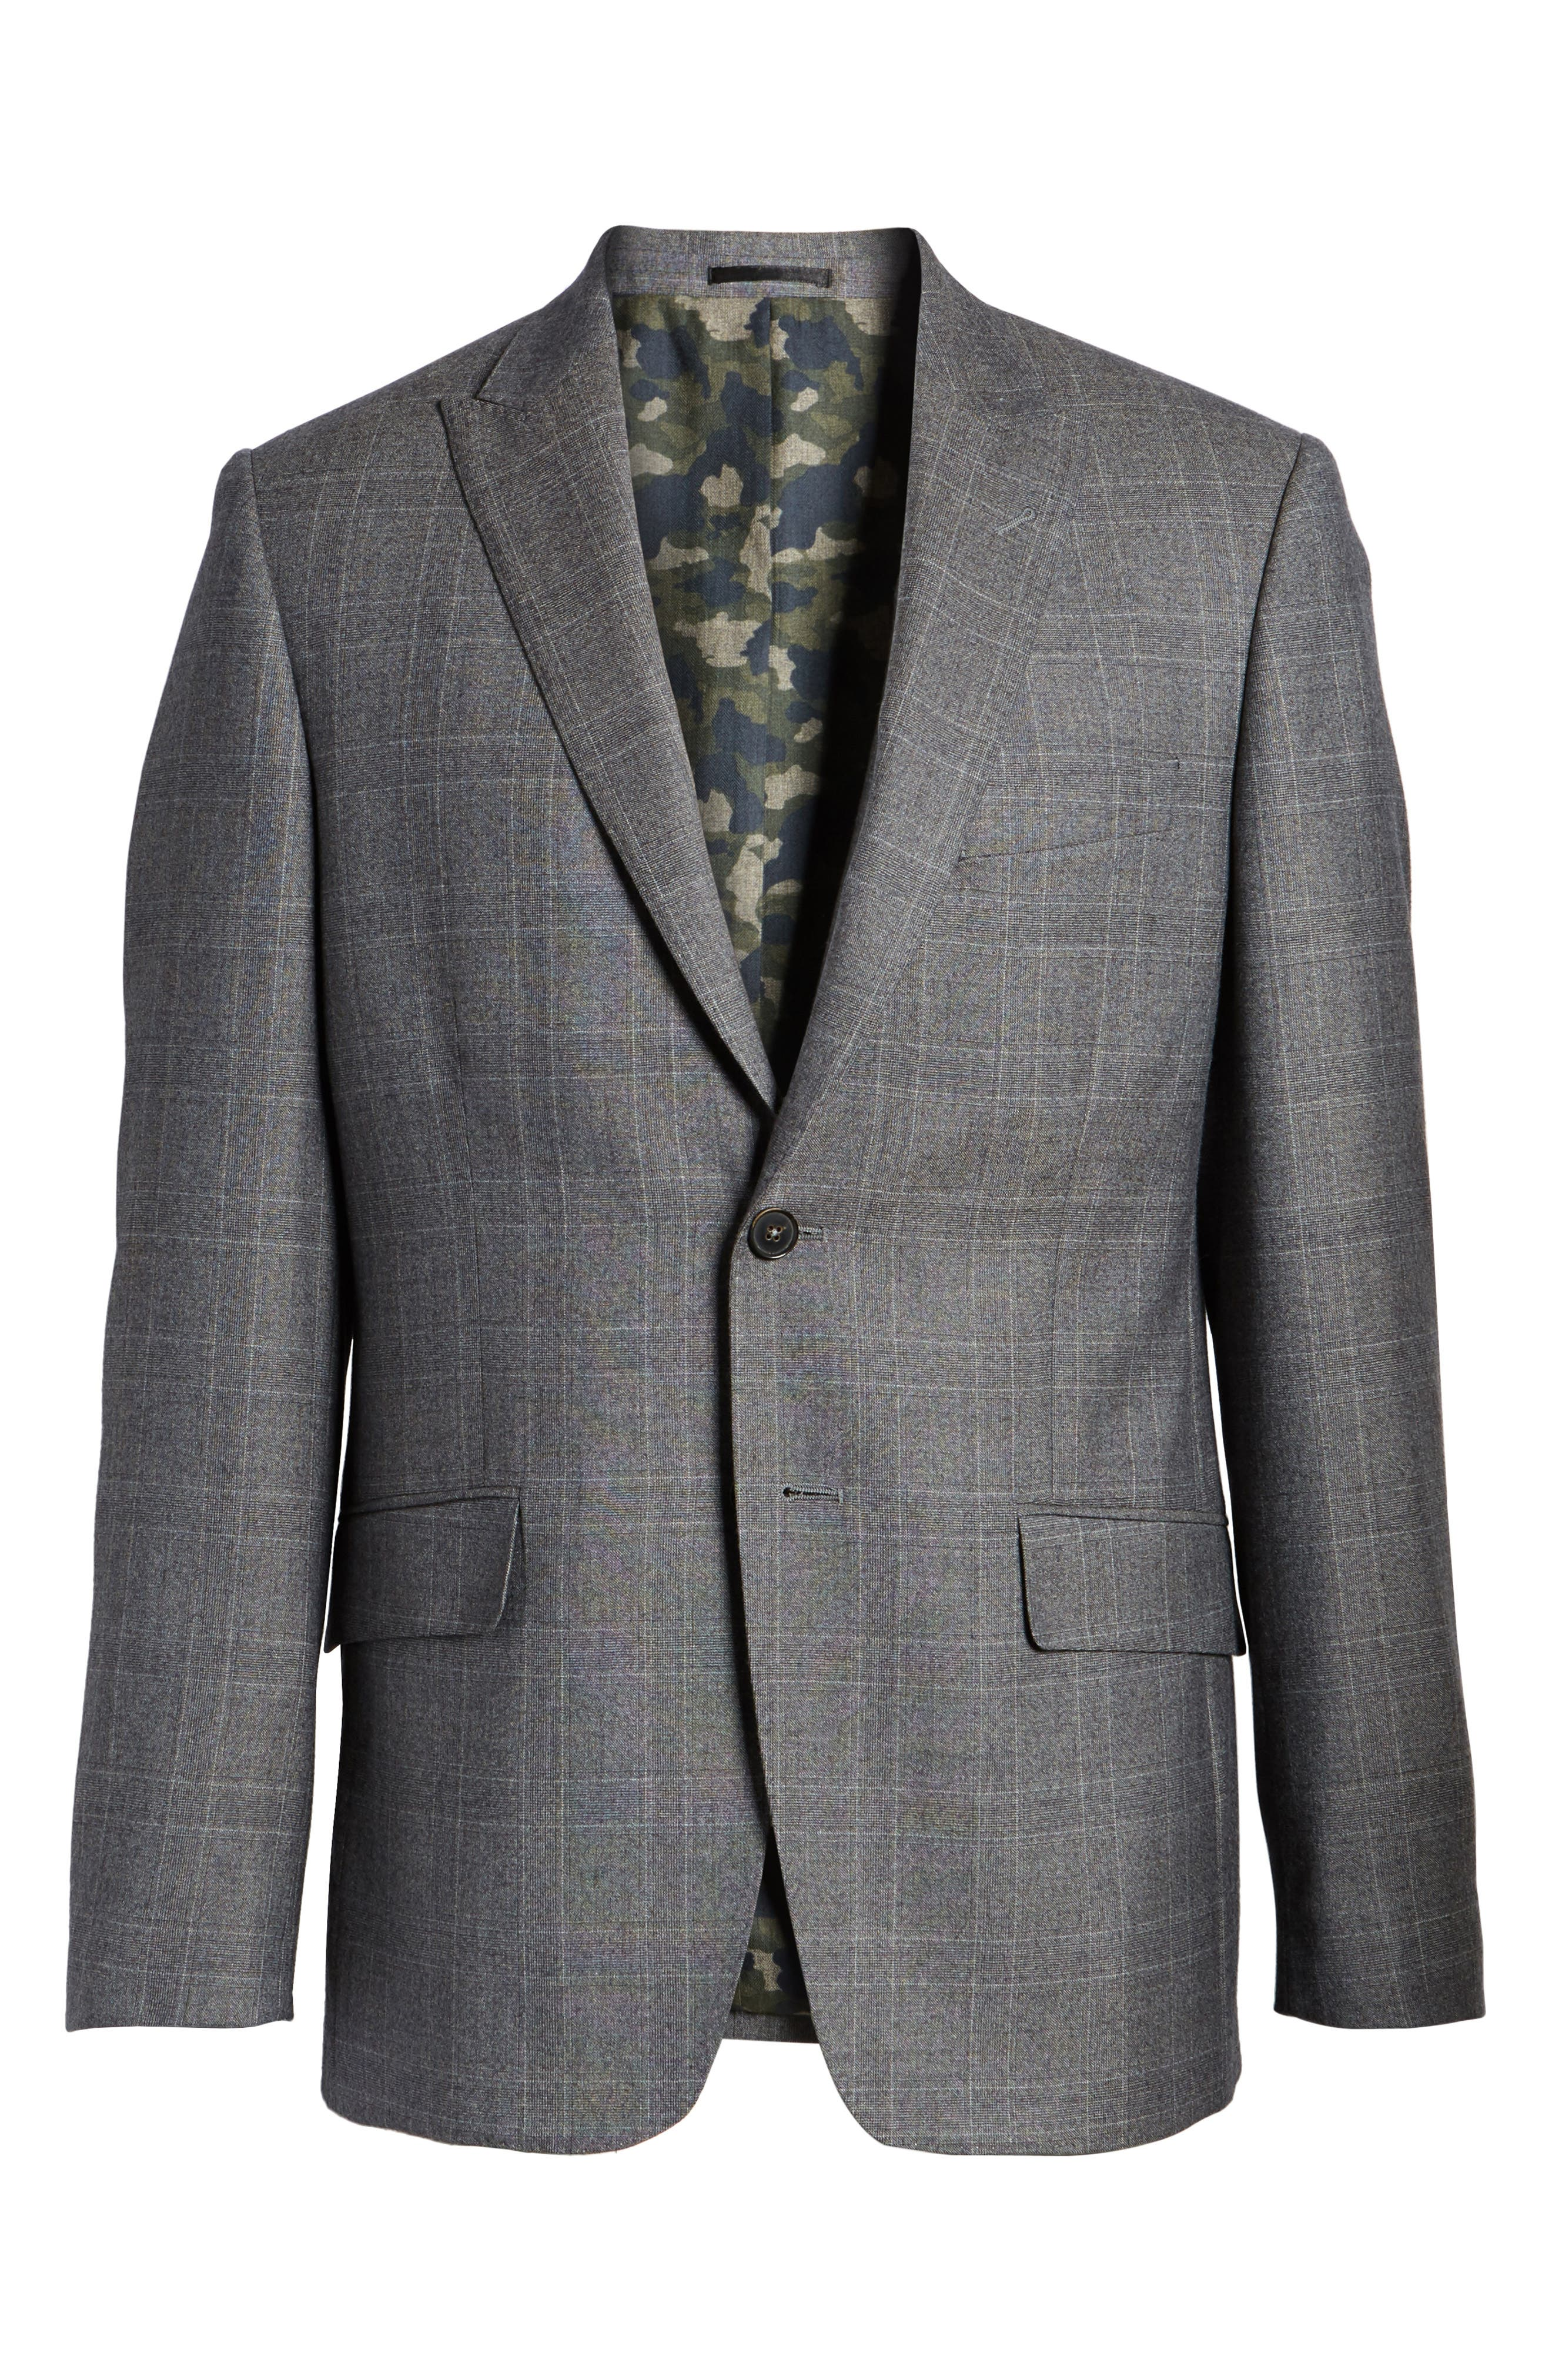 Gryning Trim Fit Plaid Wool Blend Sport Coat,                             Alternate thumbnail 6, color,                             Quiet Gray